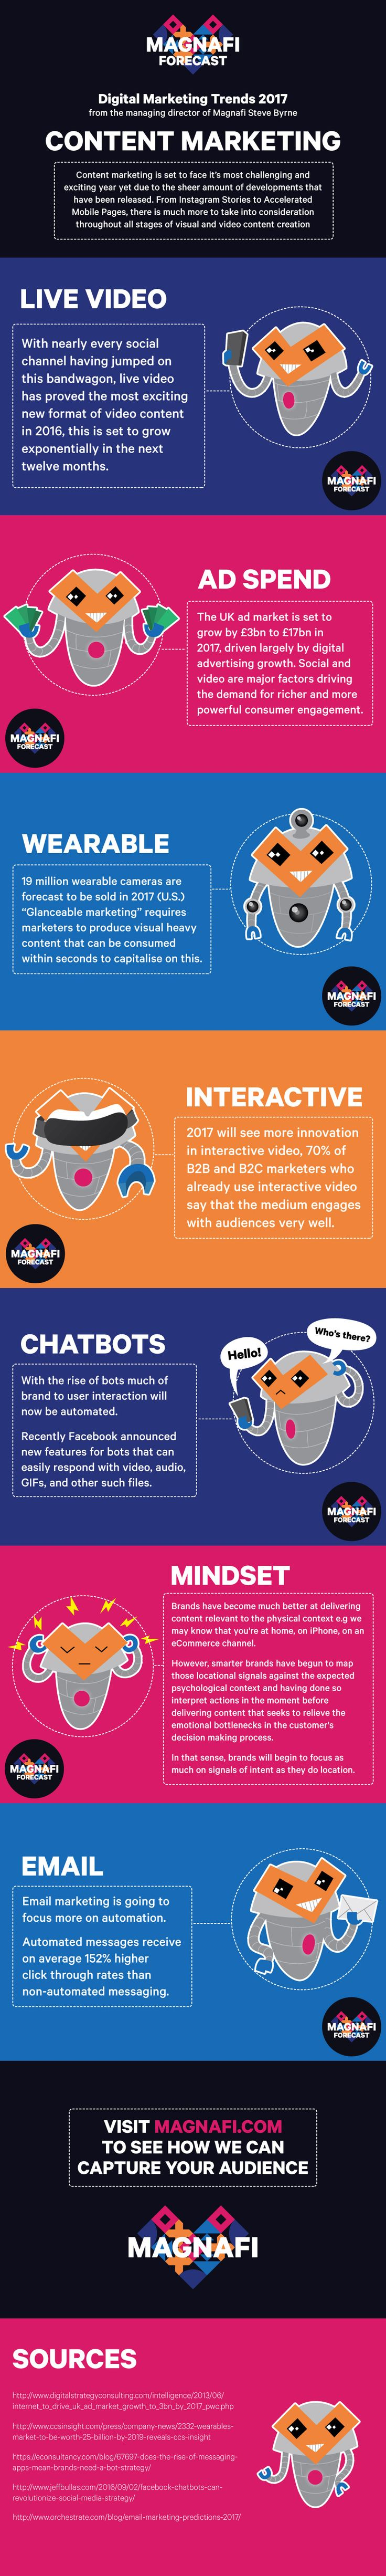 Creating a b2b digital marketing plan for 2017 infographic smart - 6 Tips To Get Ready To Market Your Business In 2017 Digital Marketing